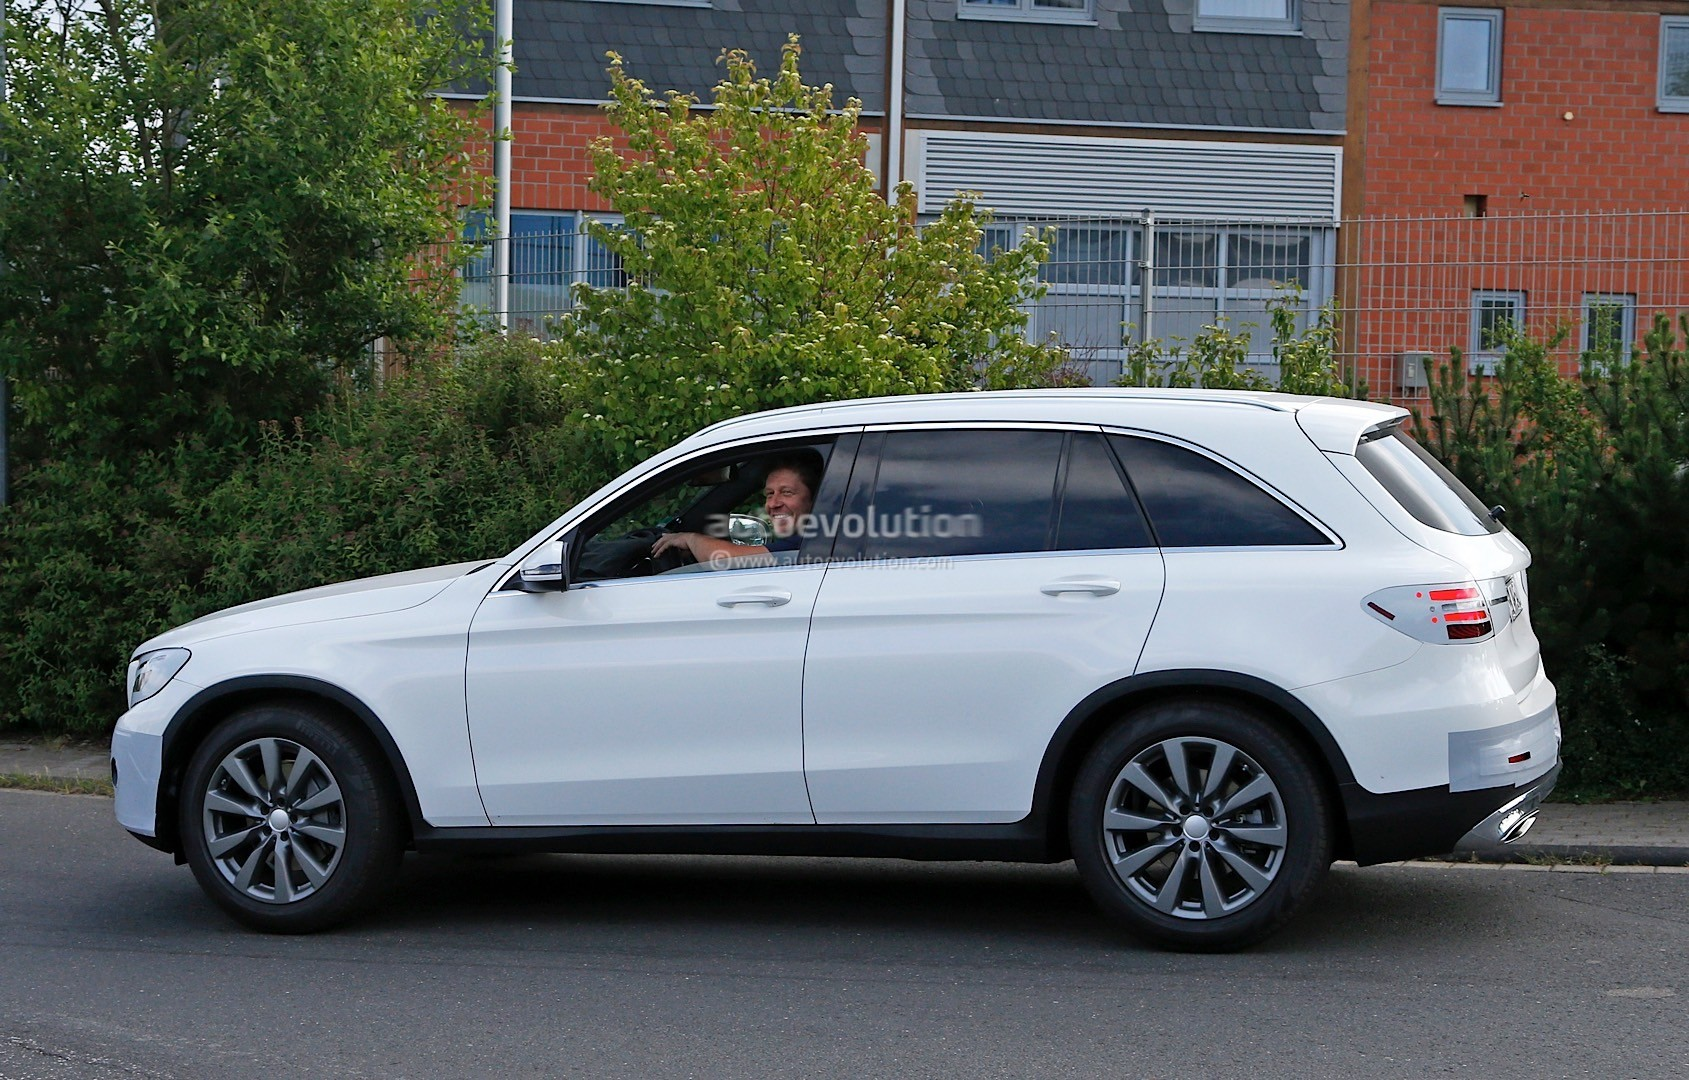 2016 mercedes benz glc spied completely exposed official debut is tomorrow autoevolution. Black Bedroom Furniture Sets. Home Design Ideas